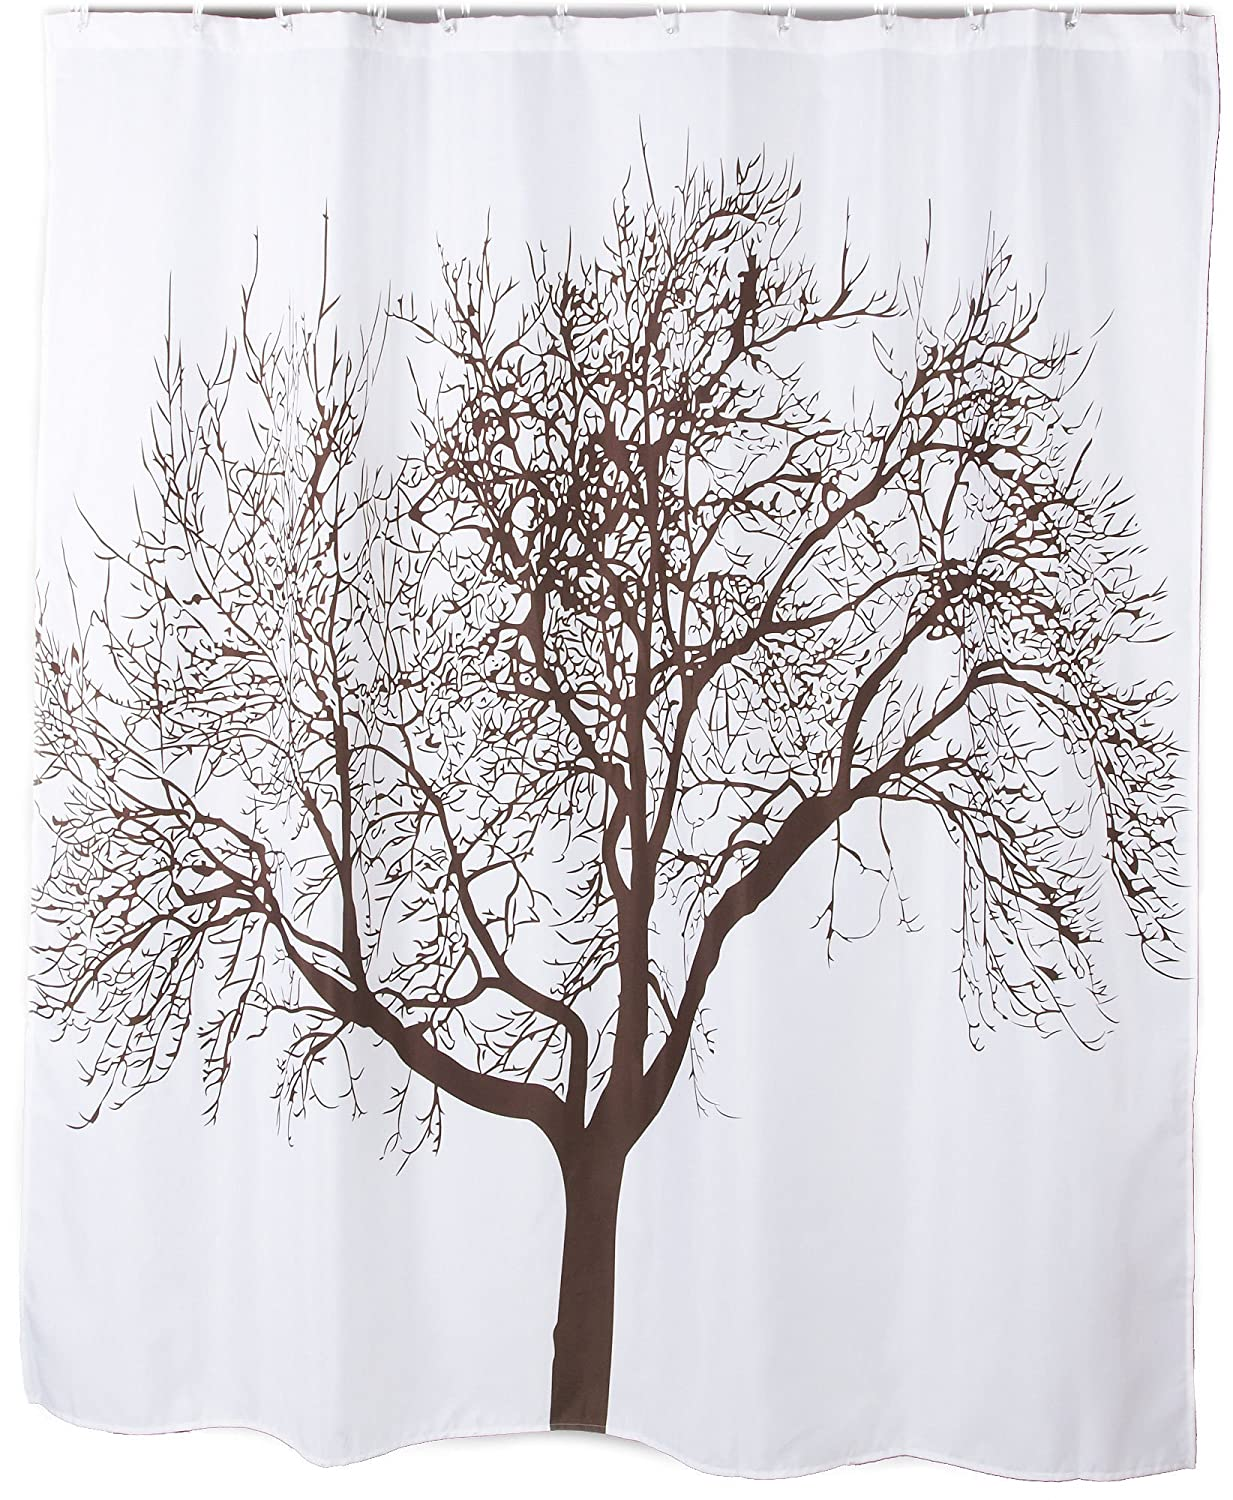 Tree Silhouette Shower Curtain Images